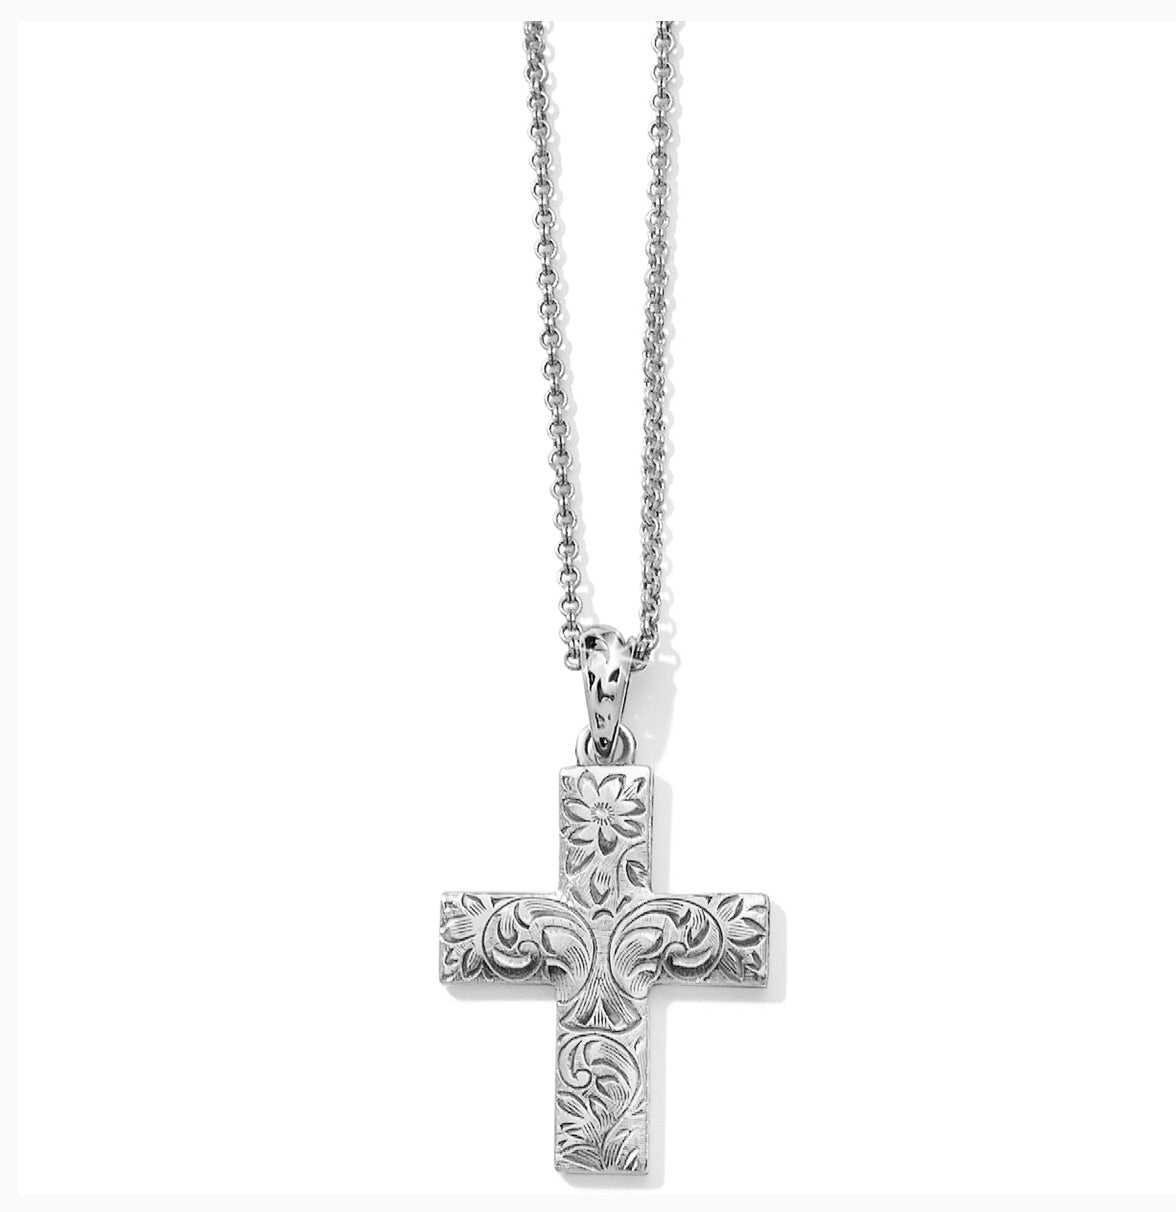 Brighton Timeless Cross Convertible Necklace JM1670